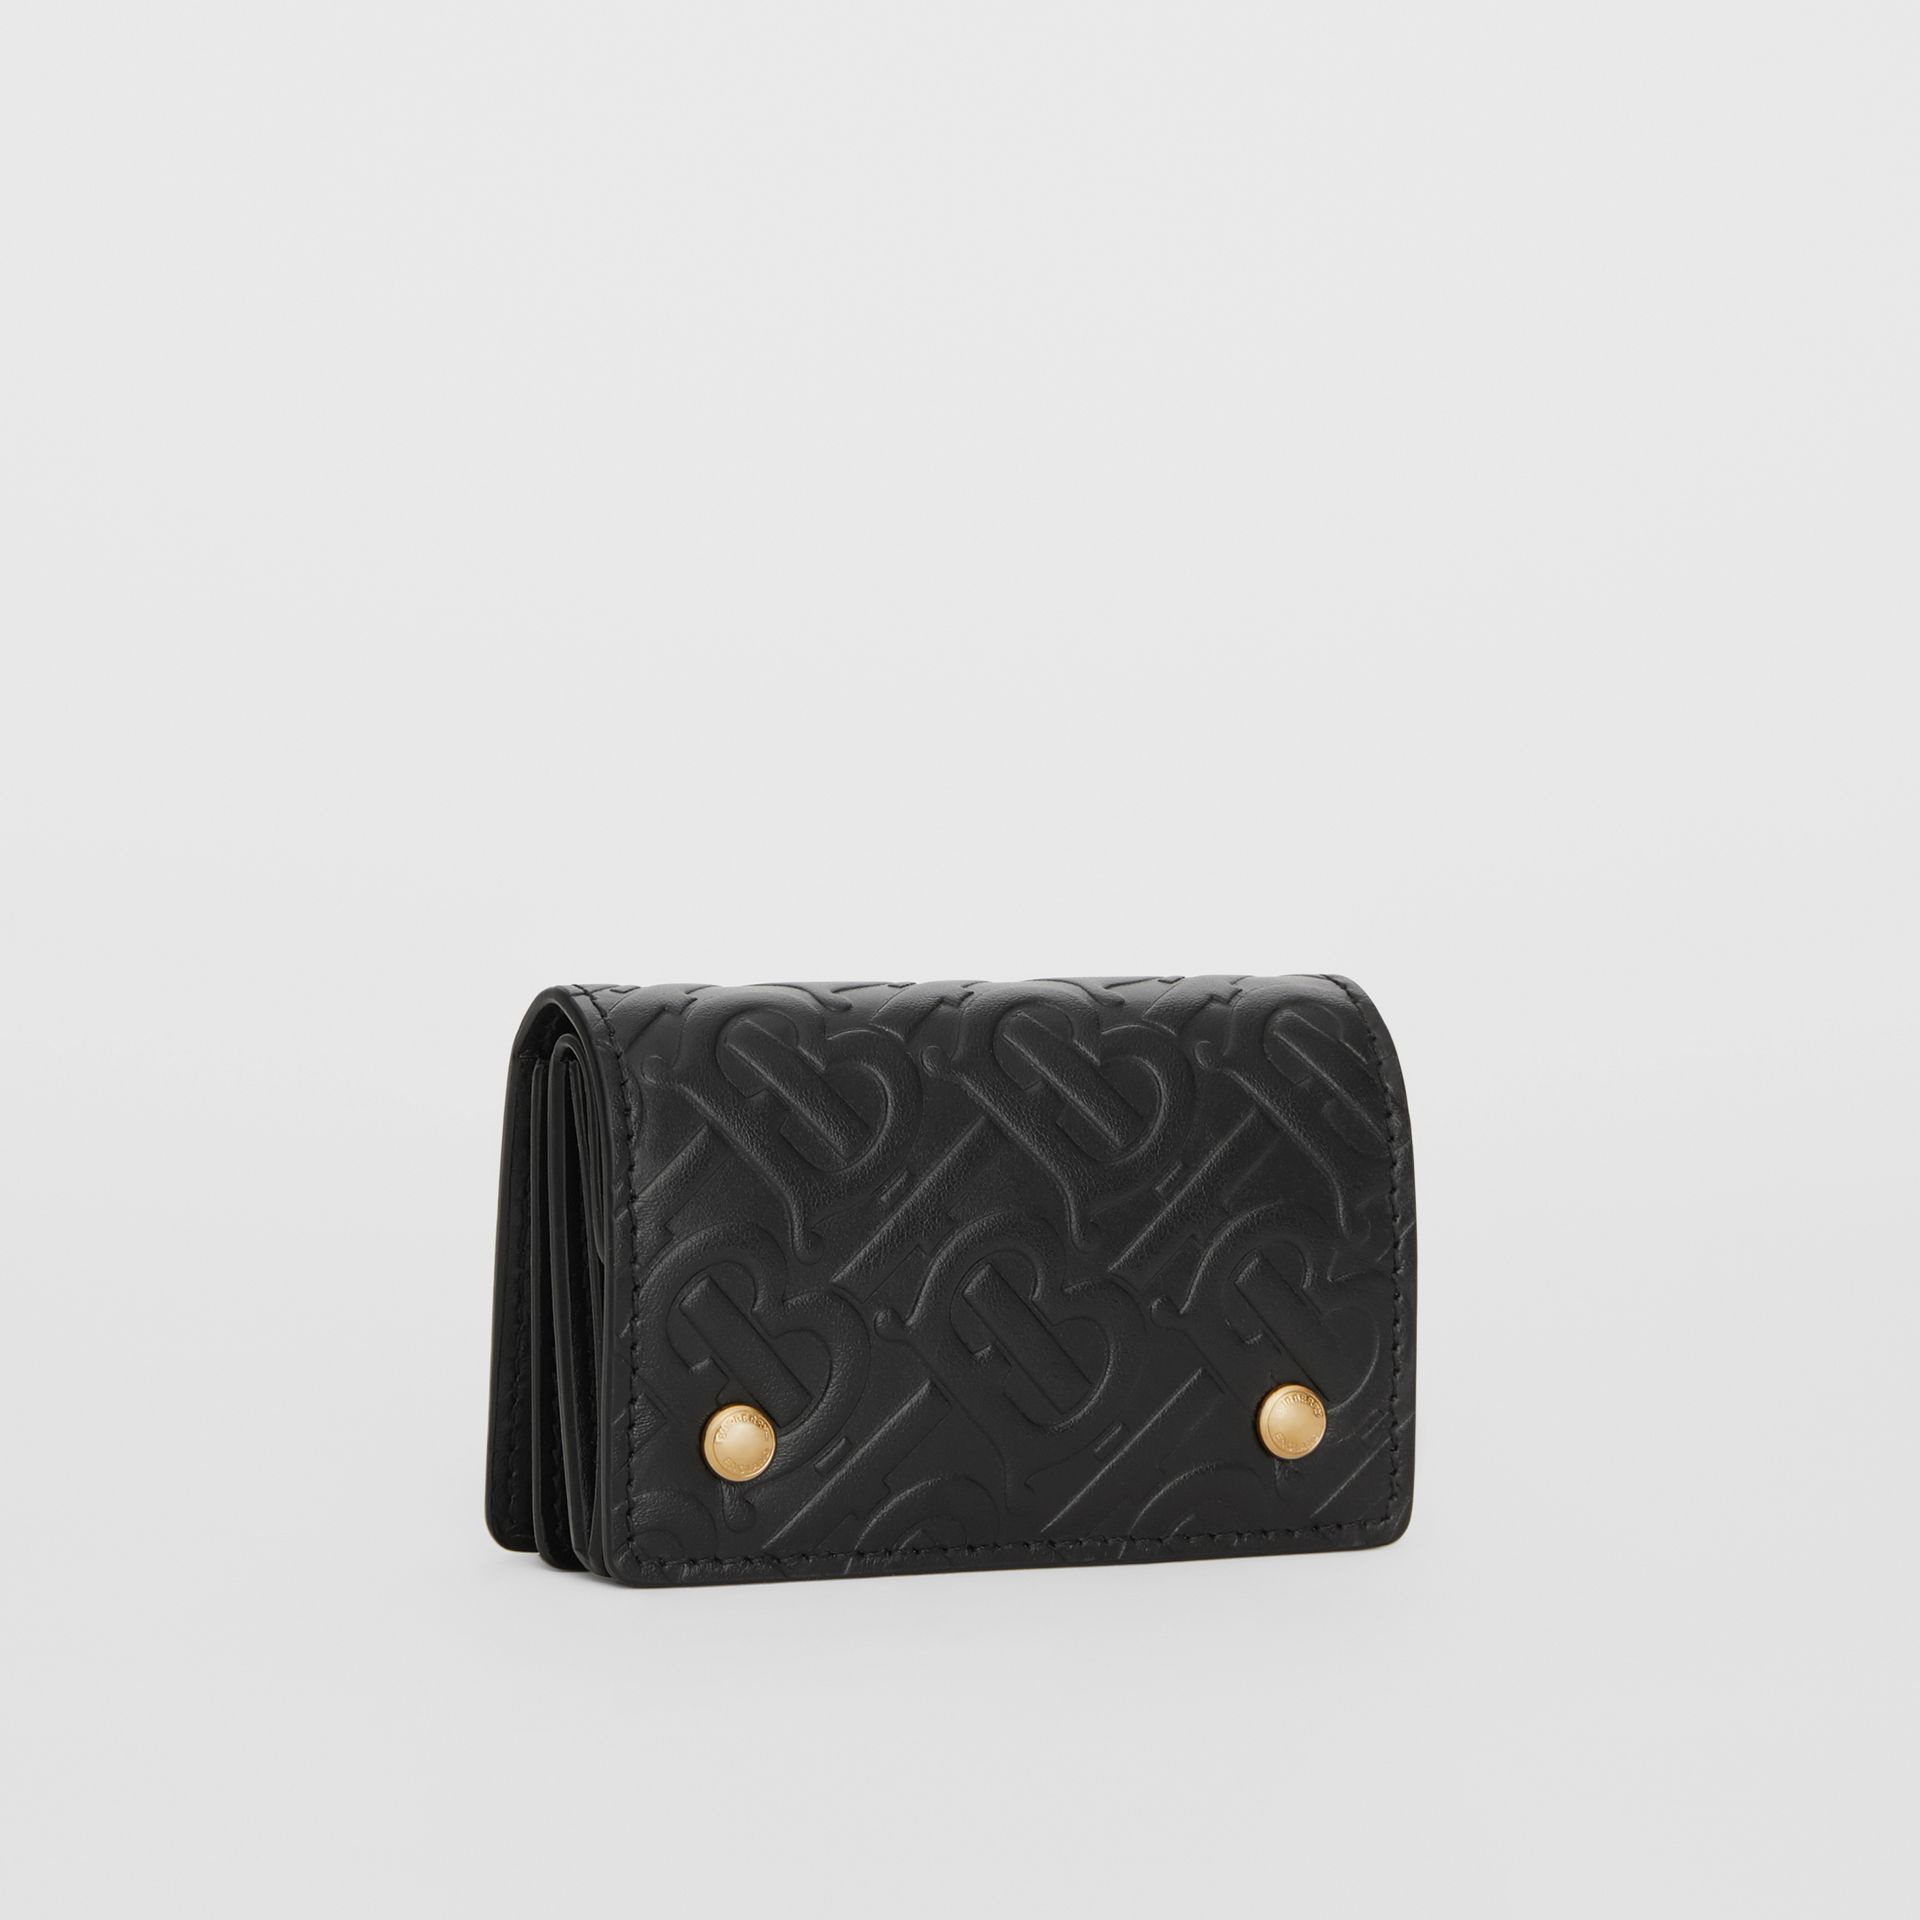 Monogram Leather Card Case in Black - Women | Burberry Singapore - gallery image 3